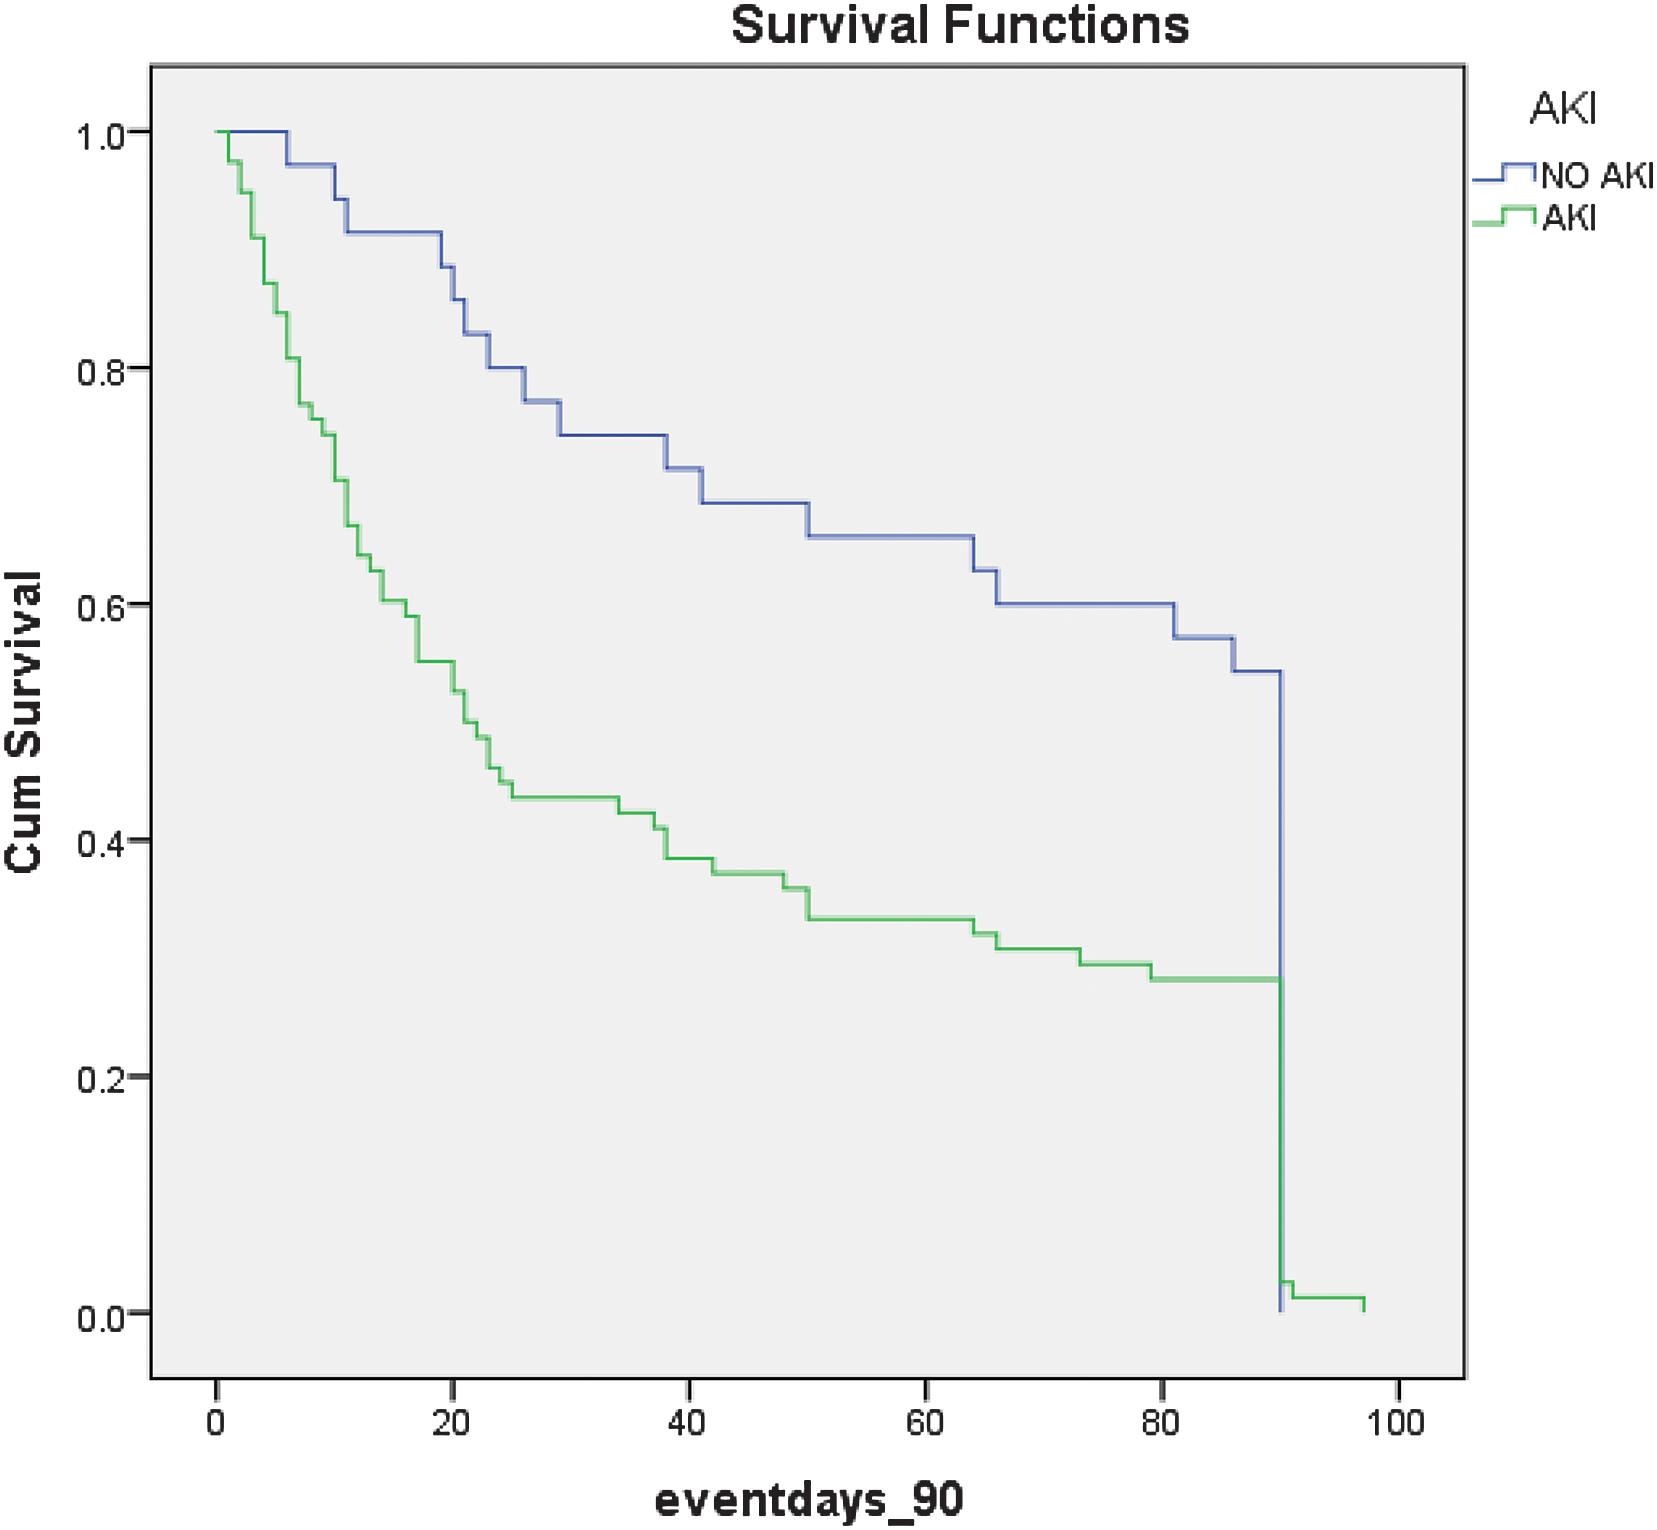 Kaplan-Meier survival curves comparing survival at day 90 for participants with ACLF with and without AKI at admission.